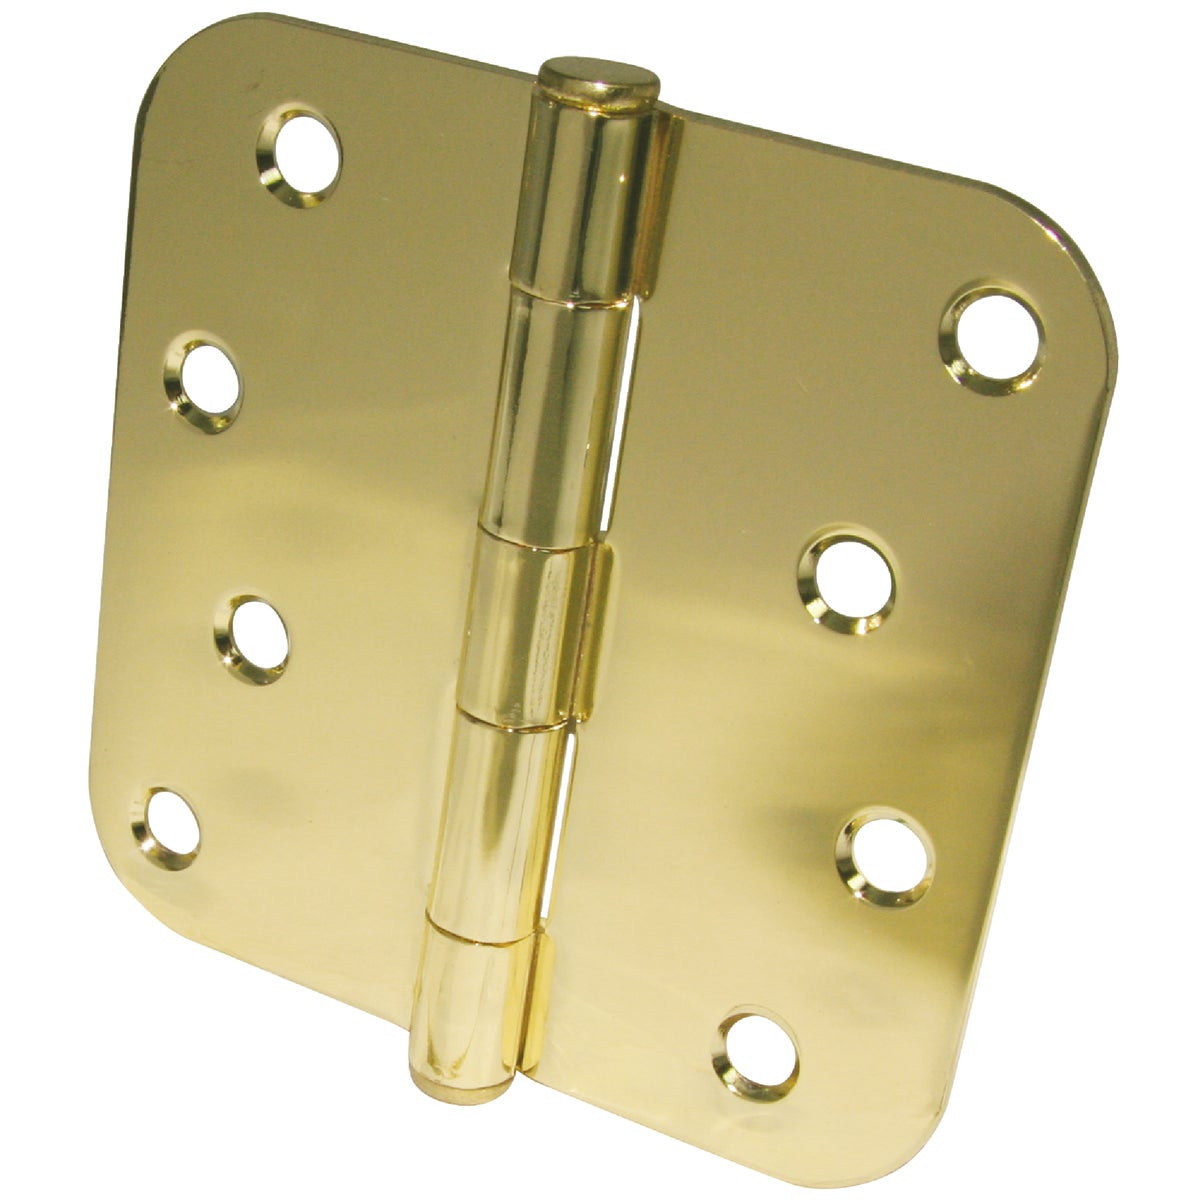 "4"" 5/8"" RAD PB 3PK HINGE - 61750 by Ultra Hardware"